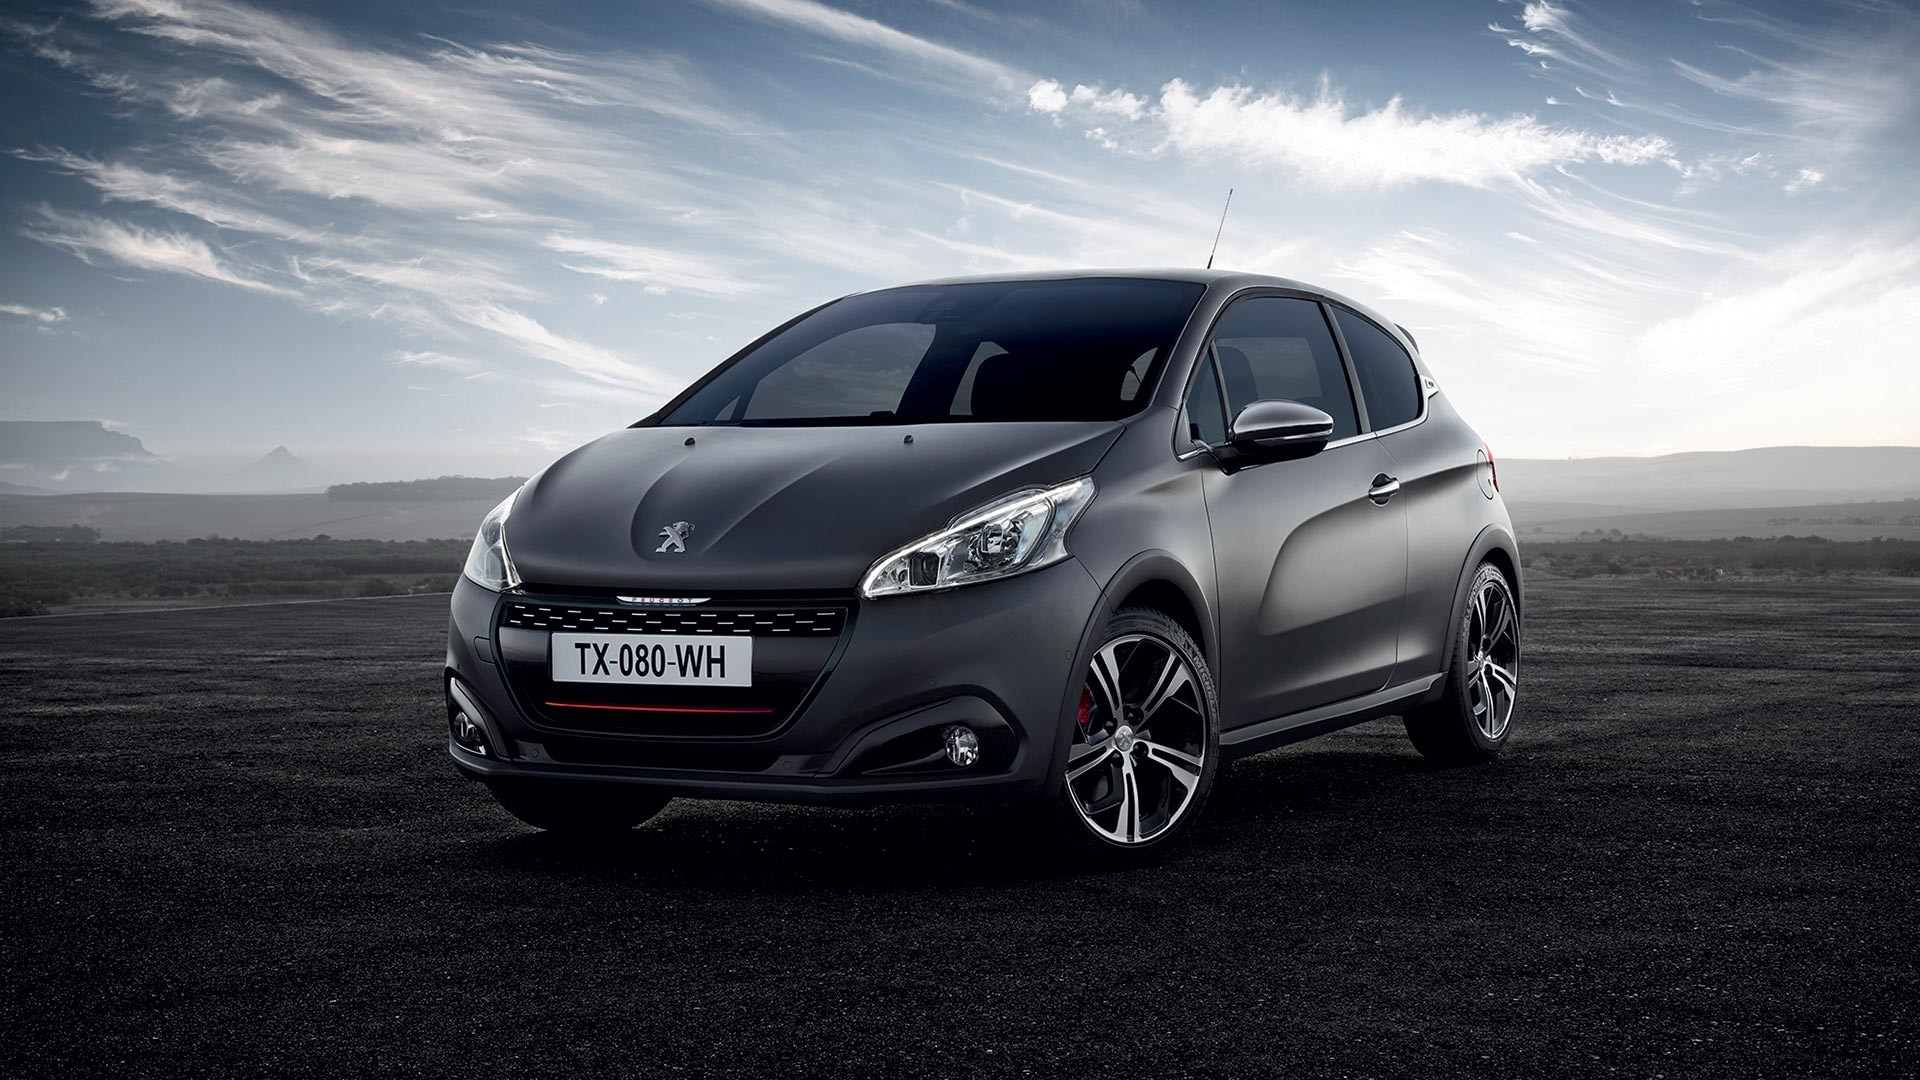 peugeot 208 gti new car showroom hot hatch sports car. Black Bedroom Furniture Sets. Home Design Ideas